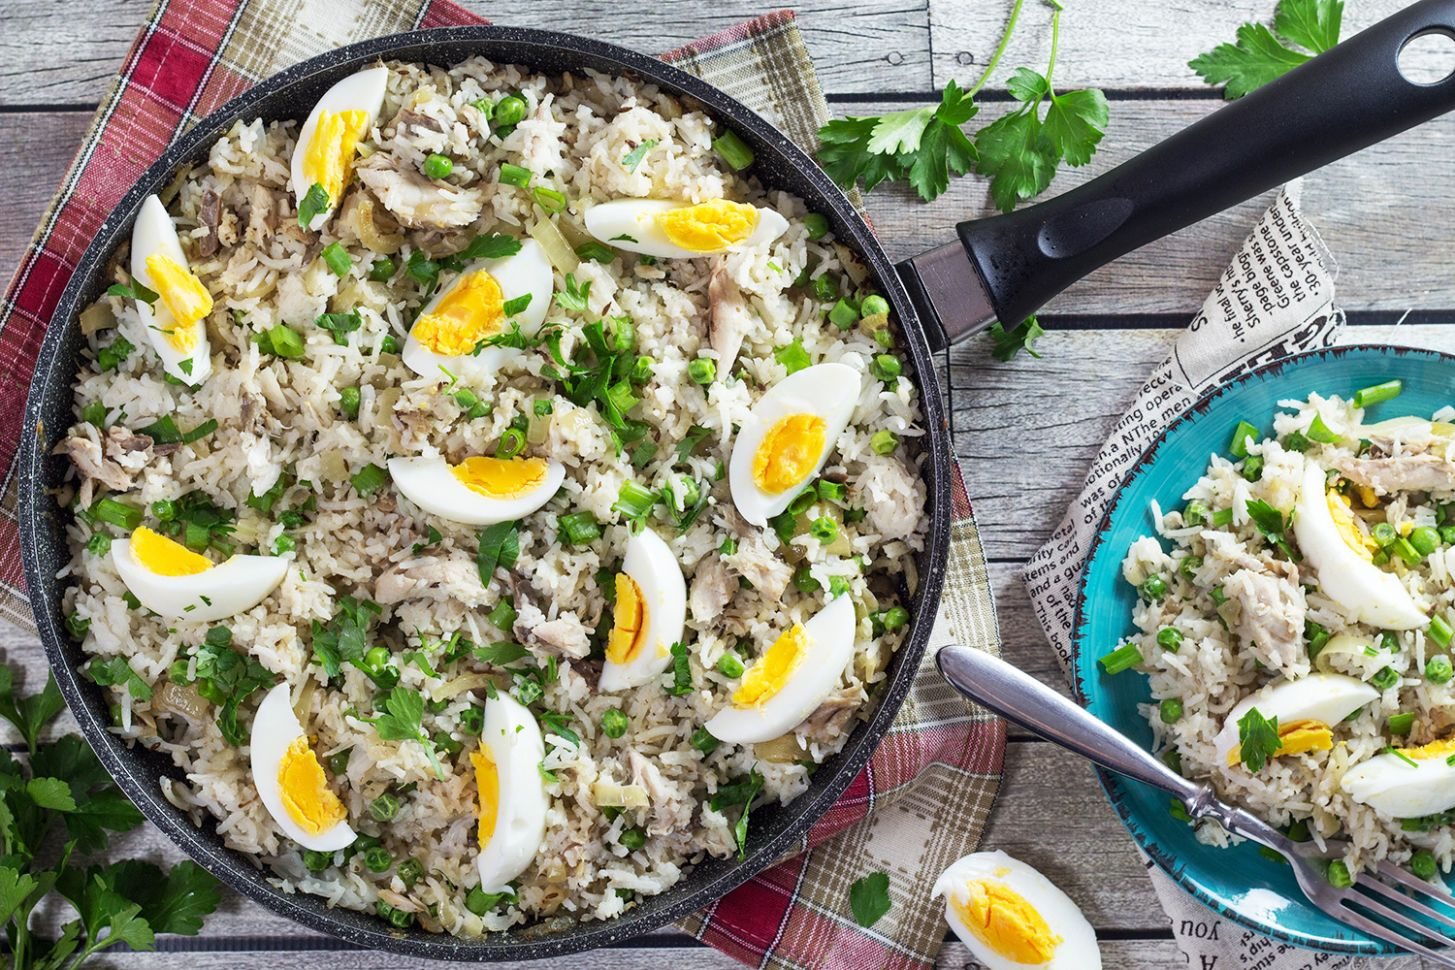 Kedgeree Recipe (British Rice with Smoked Fish) - Cooking The Globe